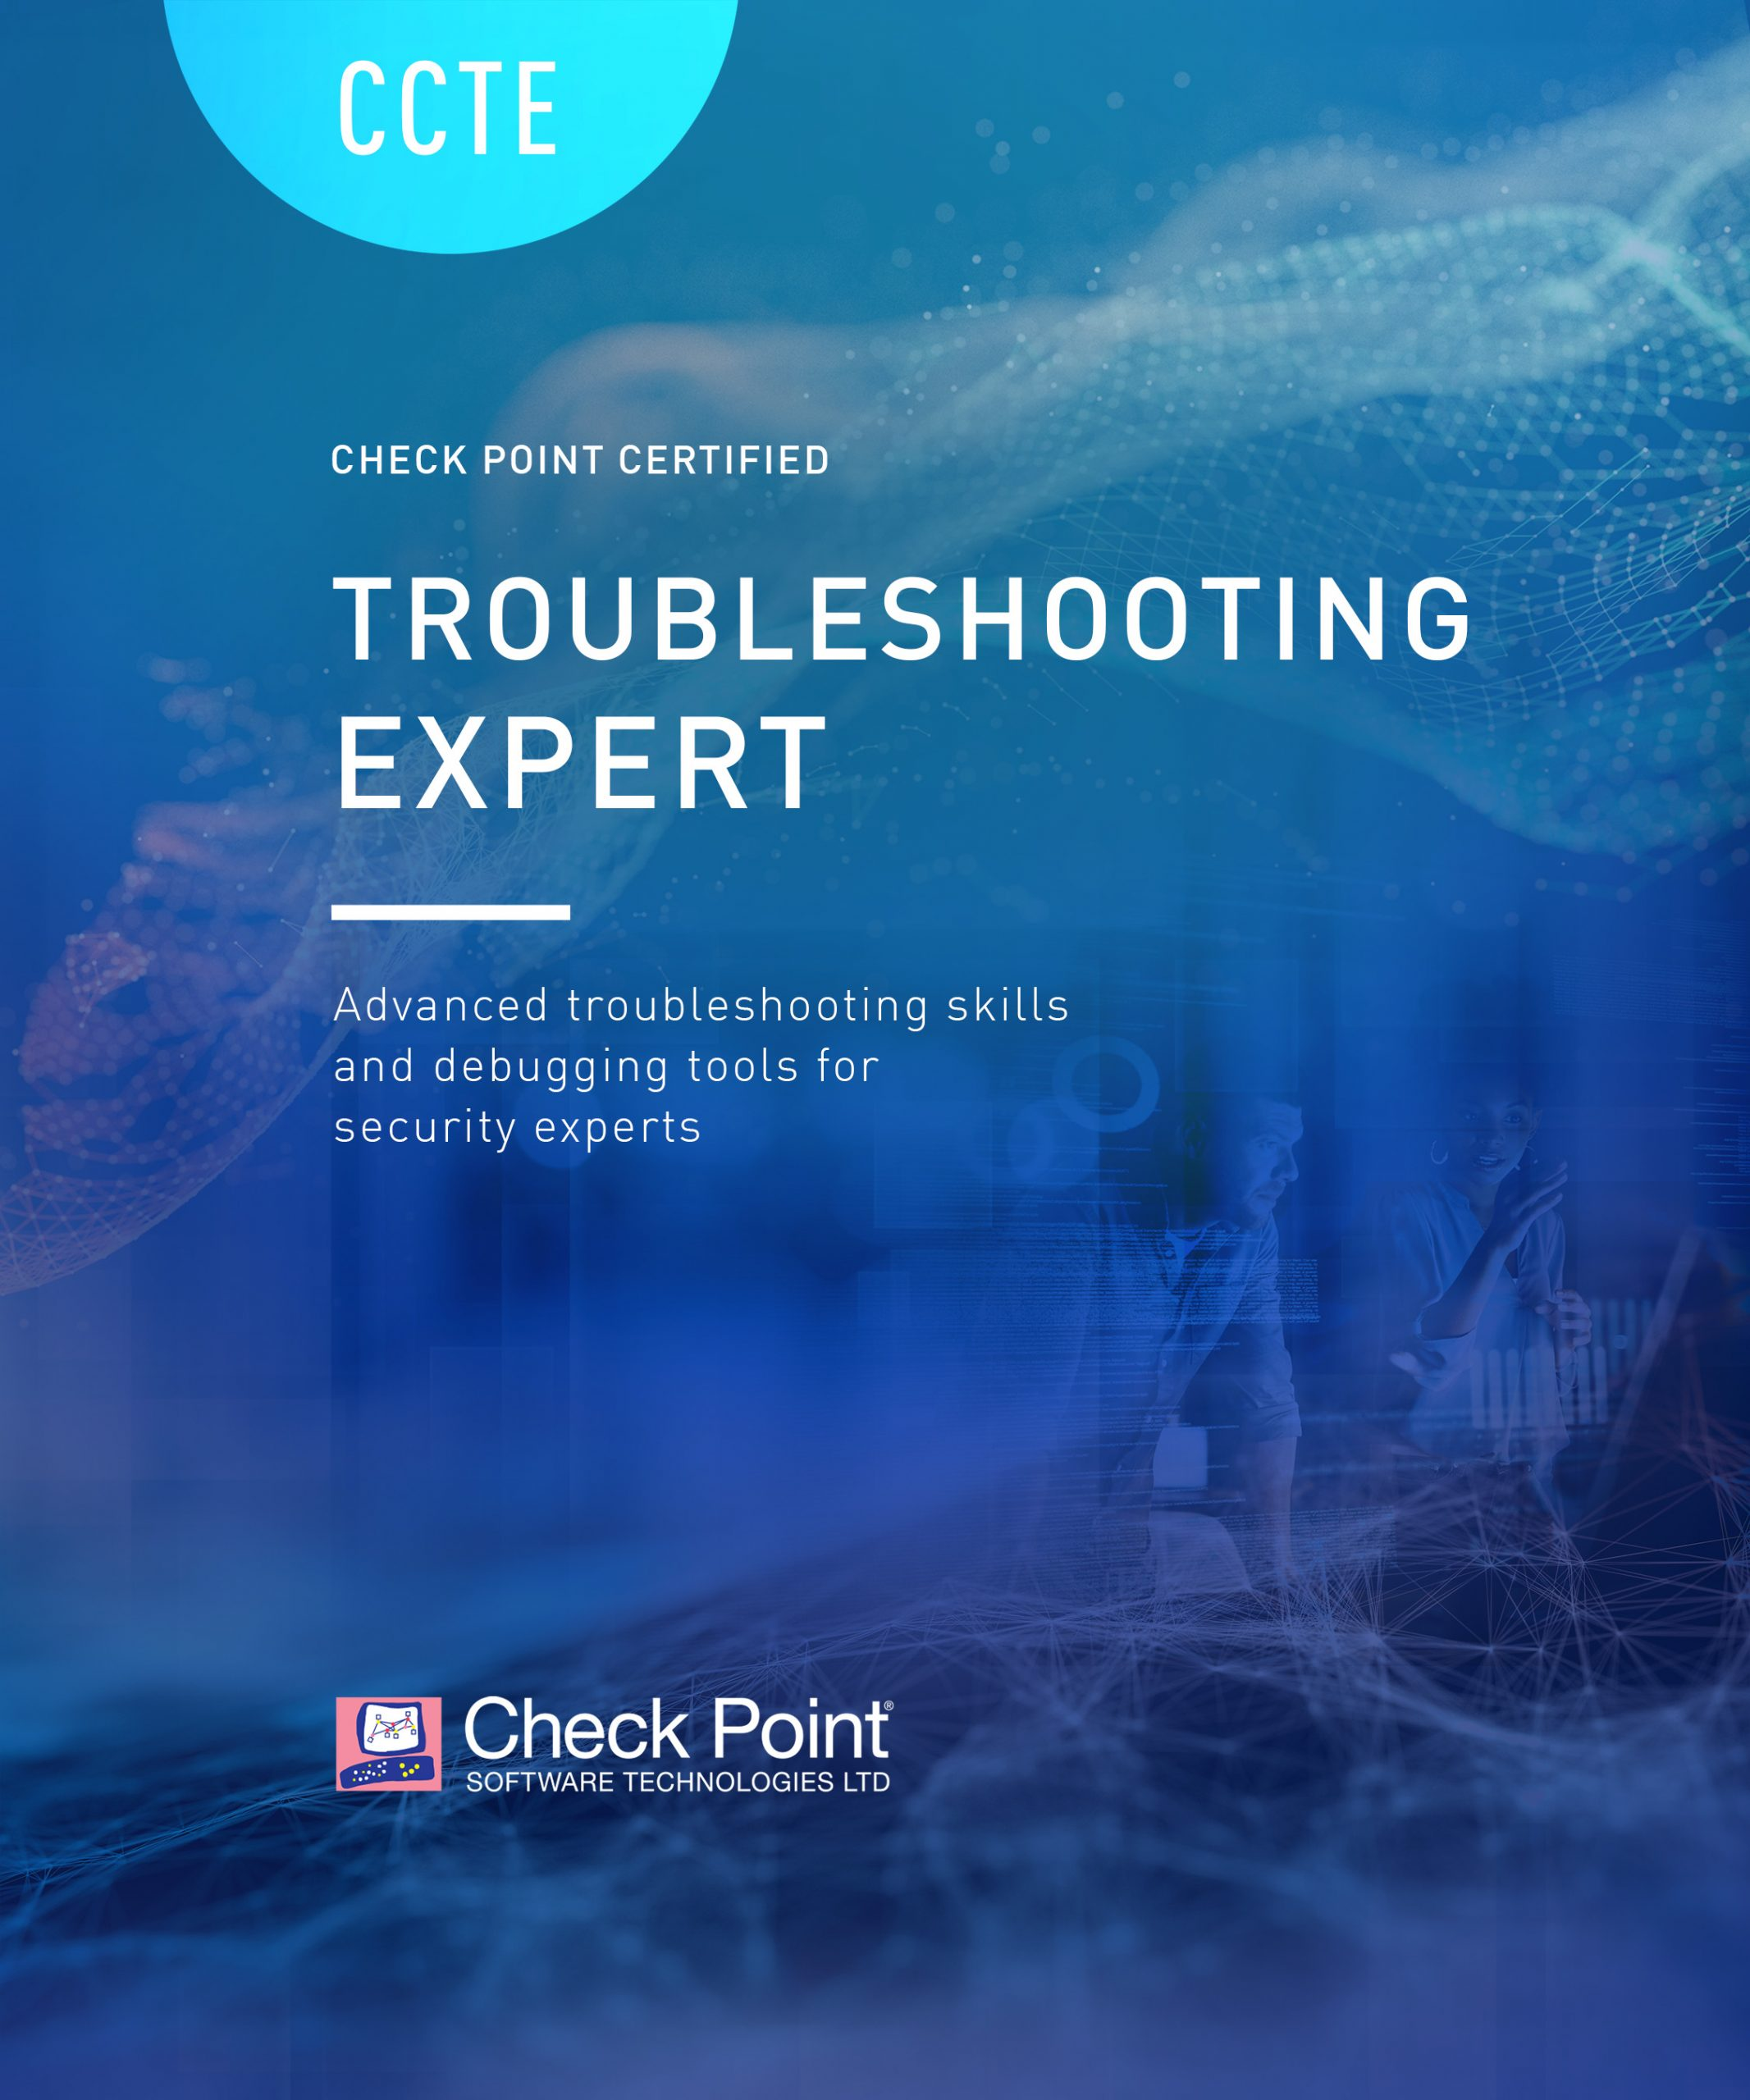 CPT-CCTE – CHECK POINT TROUBLESHOOTING EXPERT (CCTE)